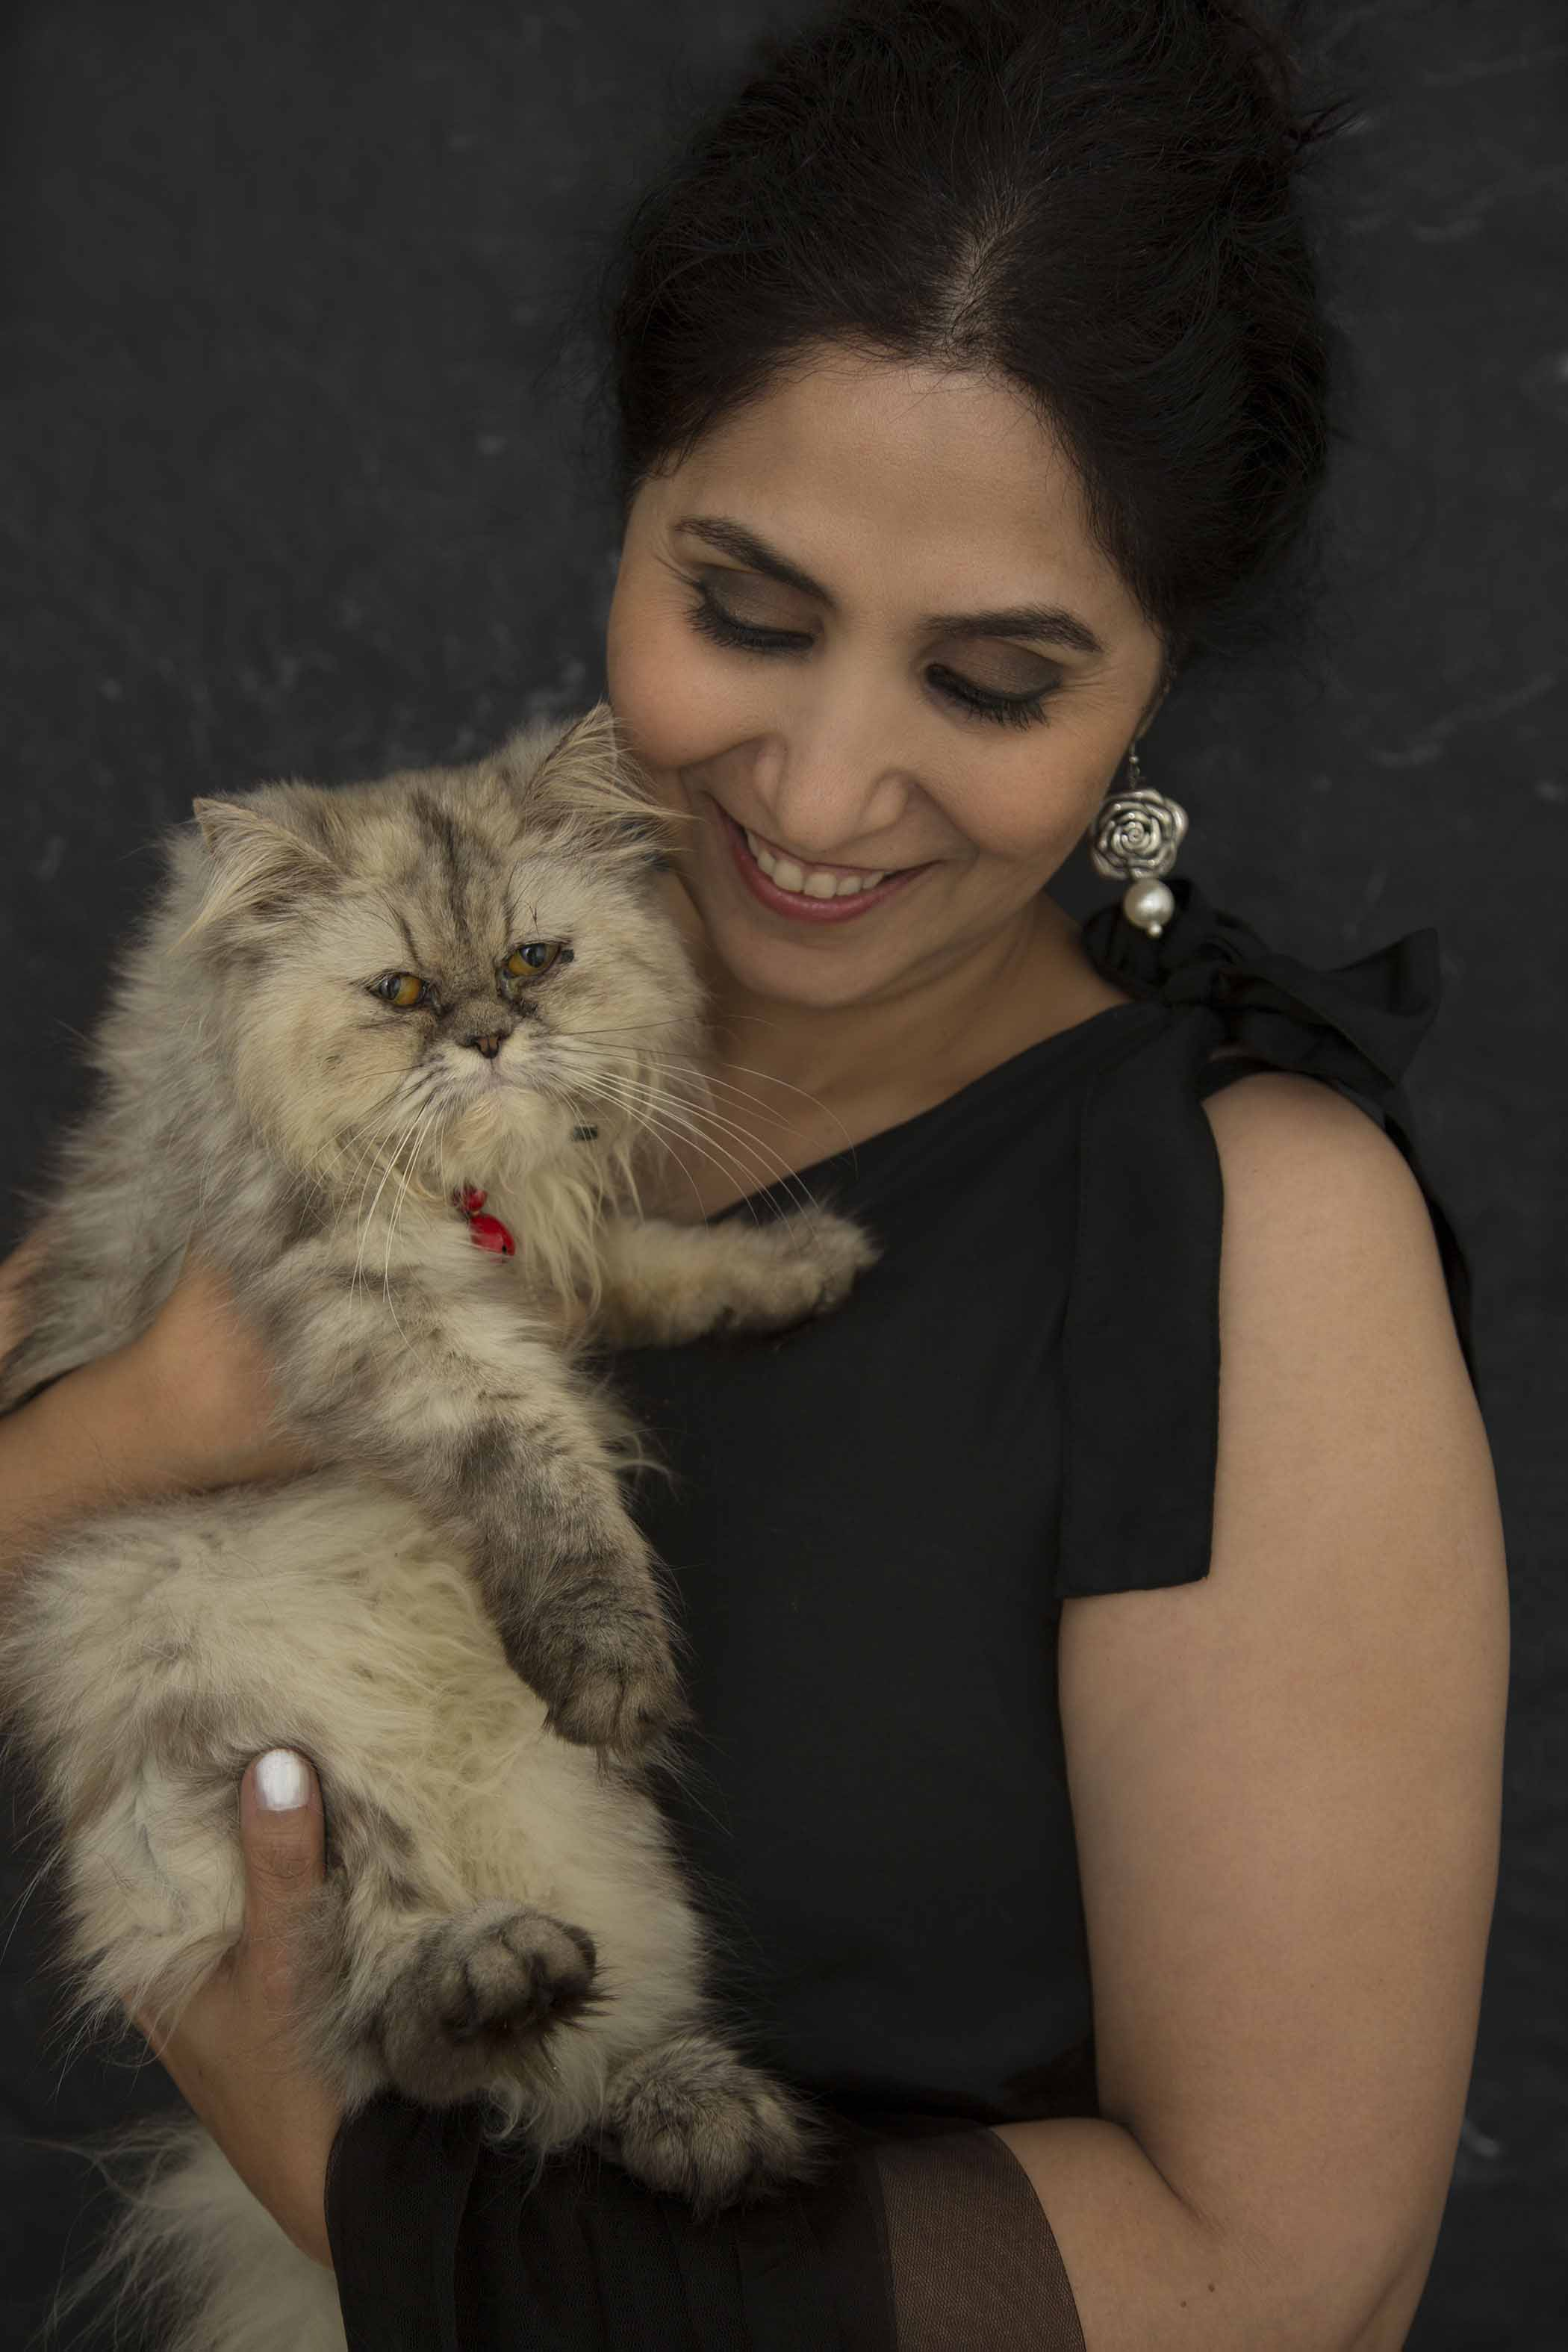 Chandni Jaffri - This has been one of my most memorable experiences and MJs first outing as a model cat.....Thank you for hosting us & clicking such honest soulful pictures. As they say